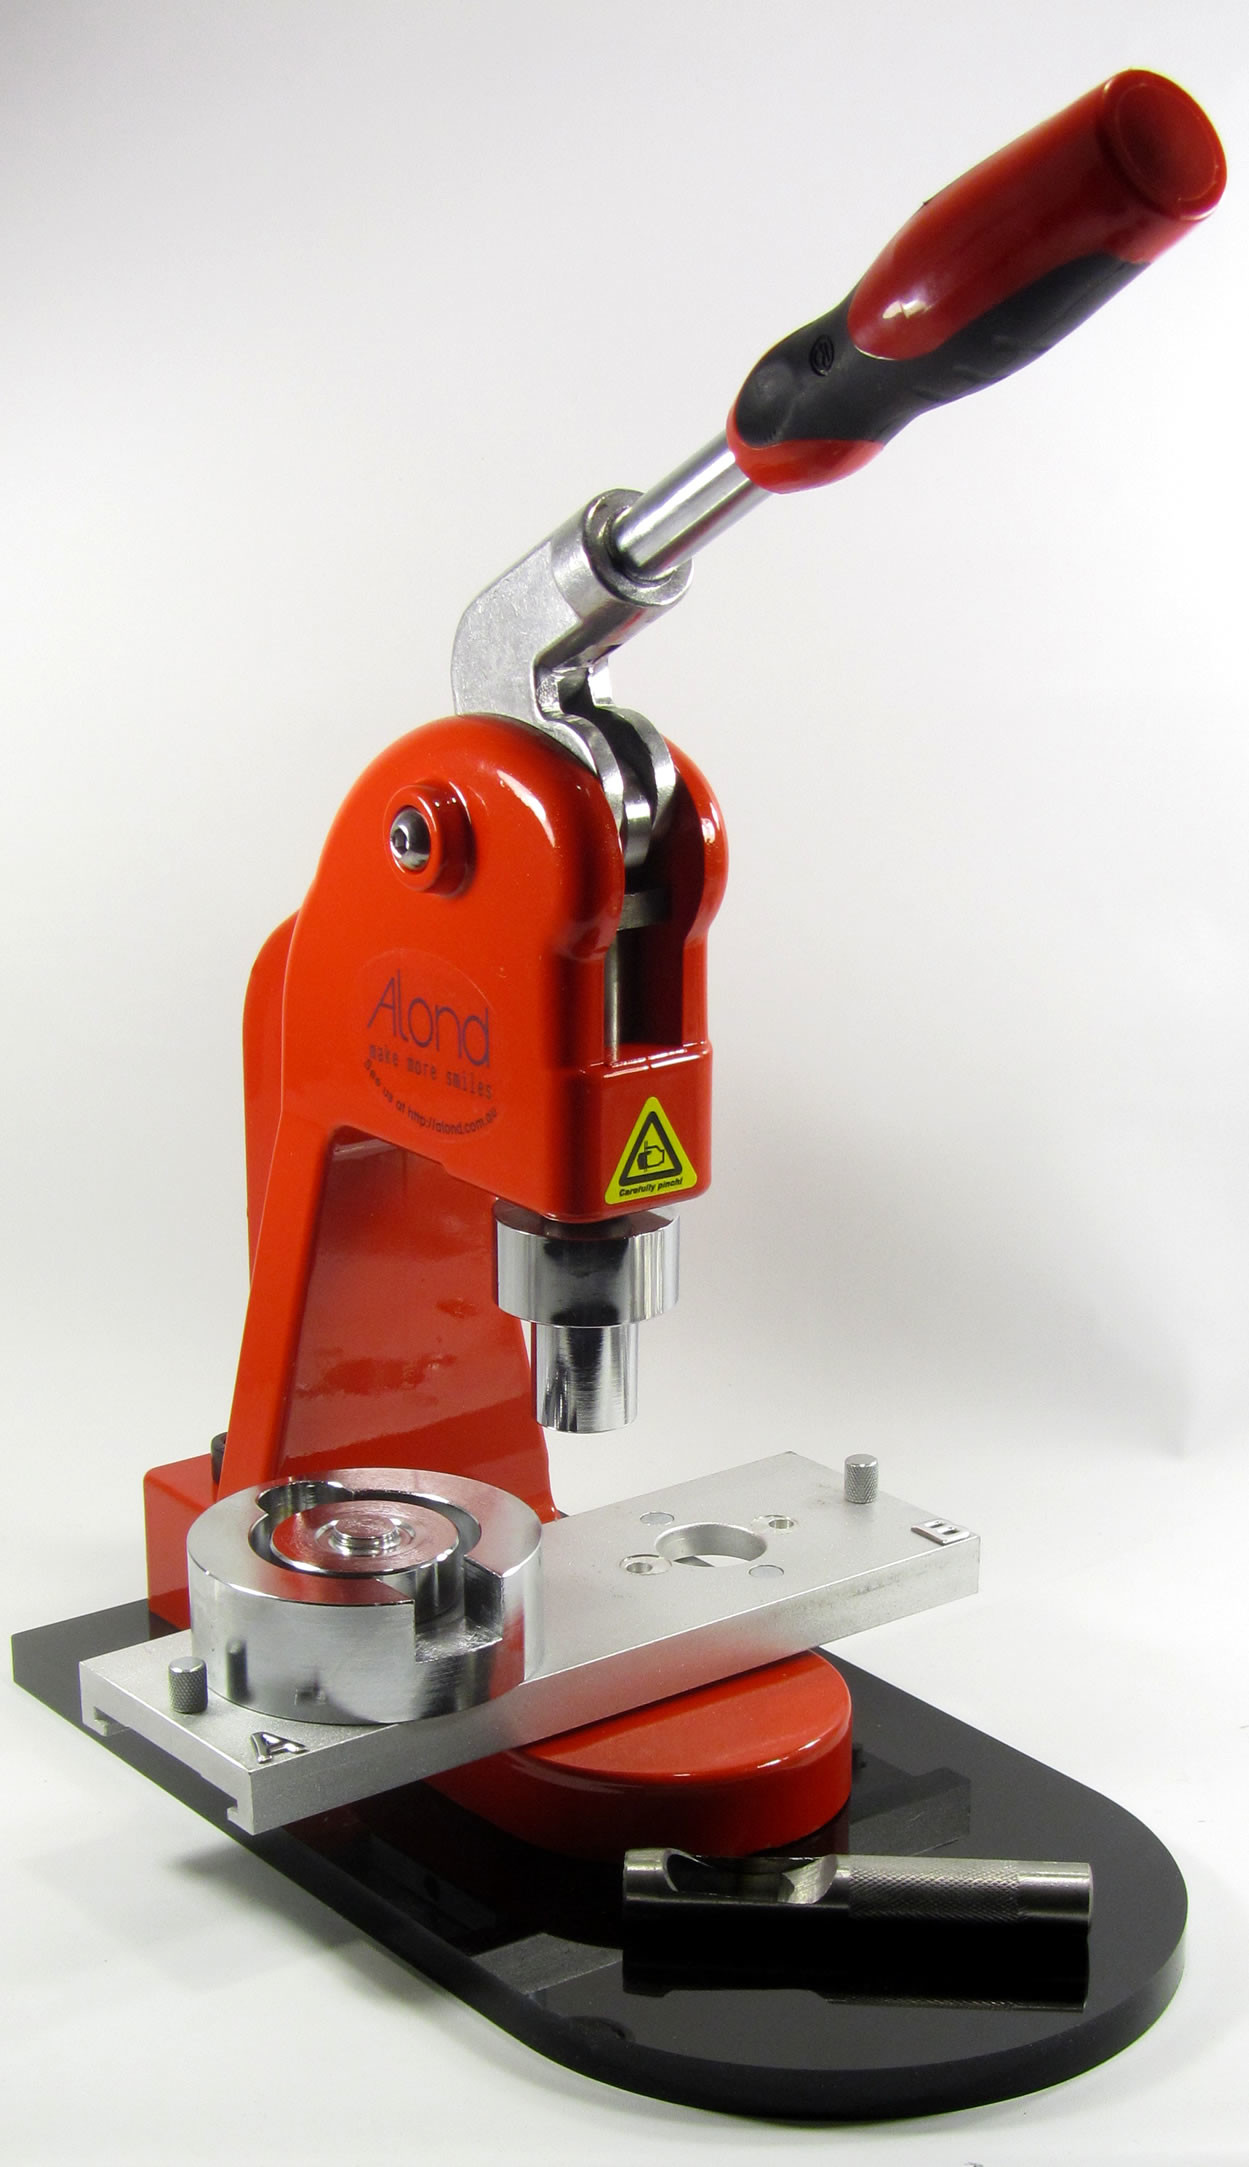 An easy to use eyelet press